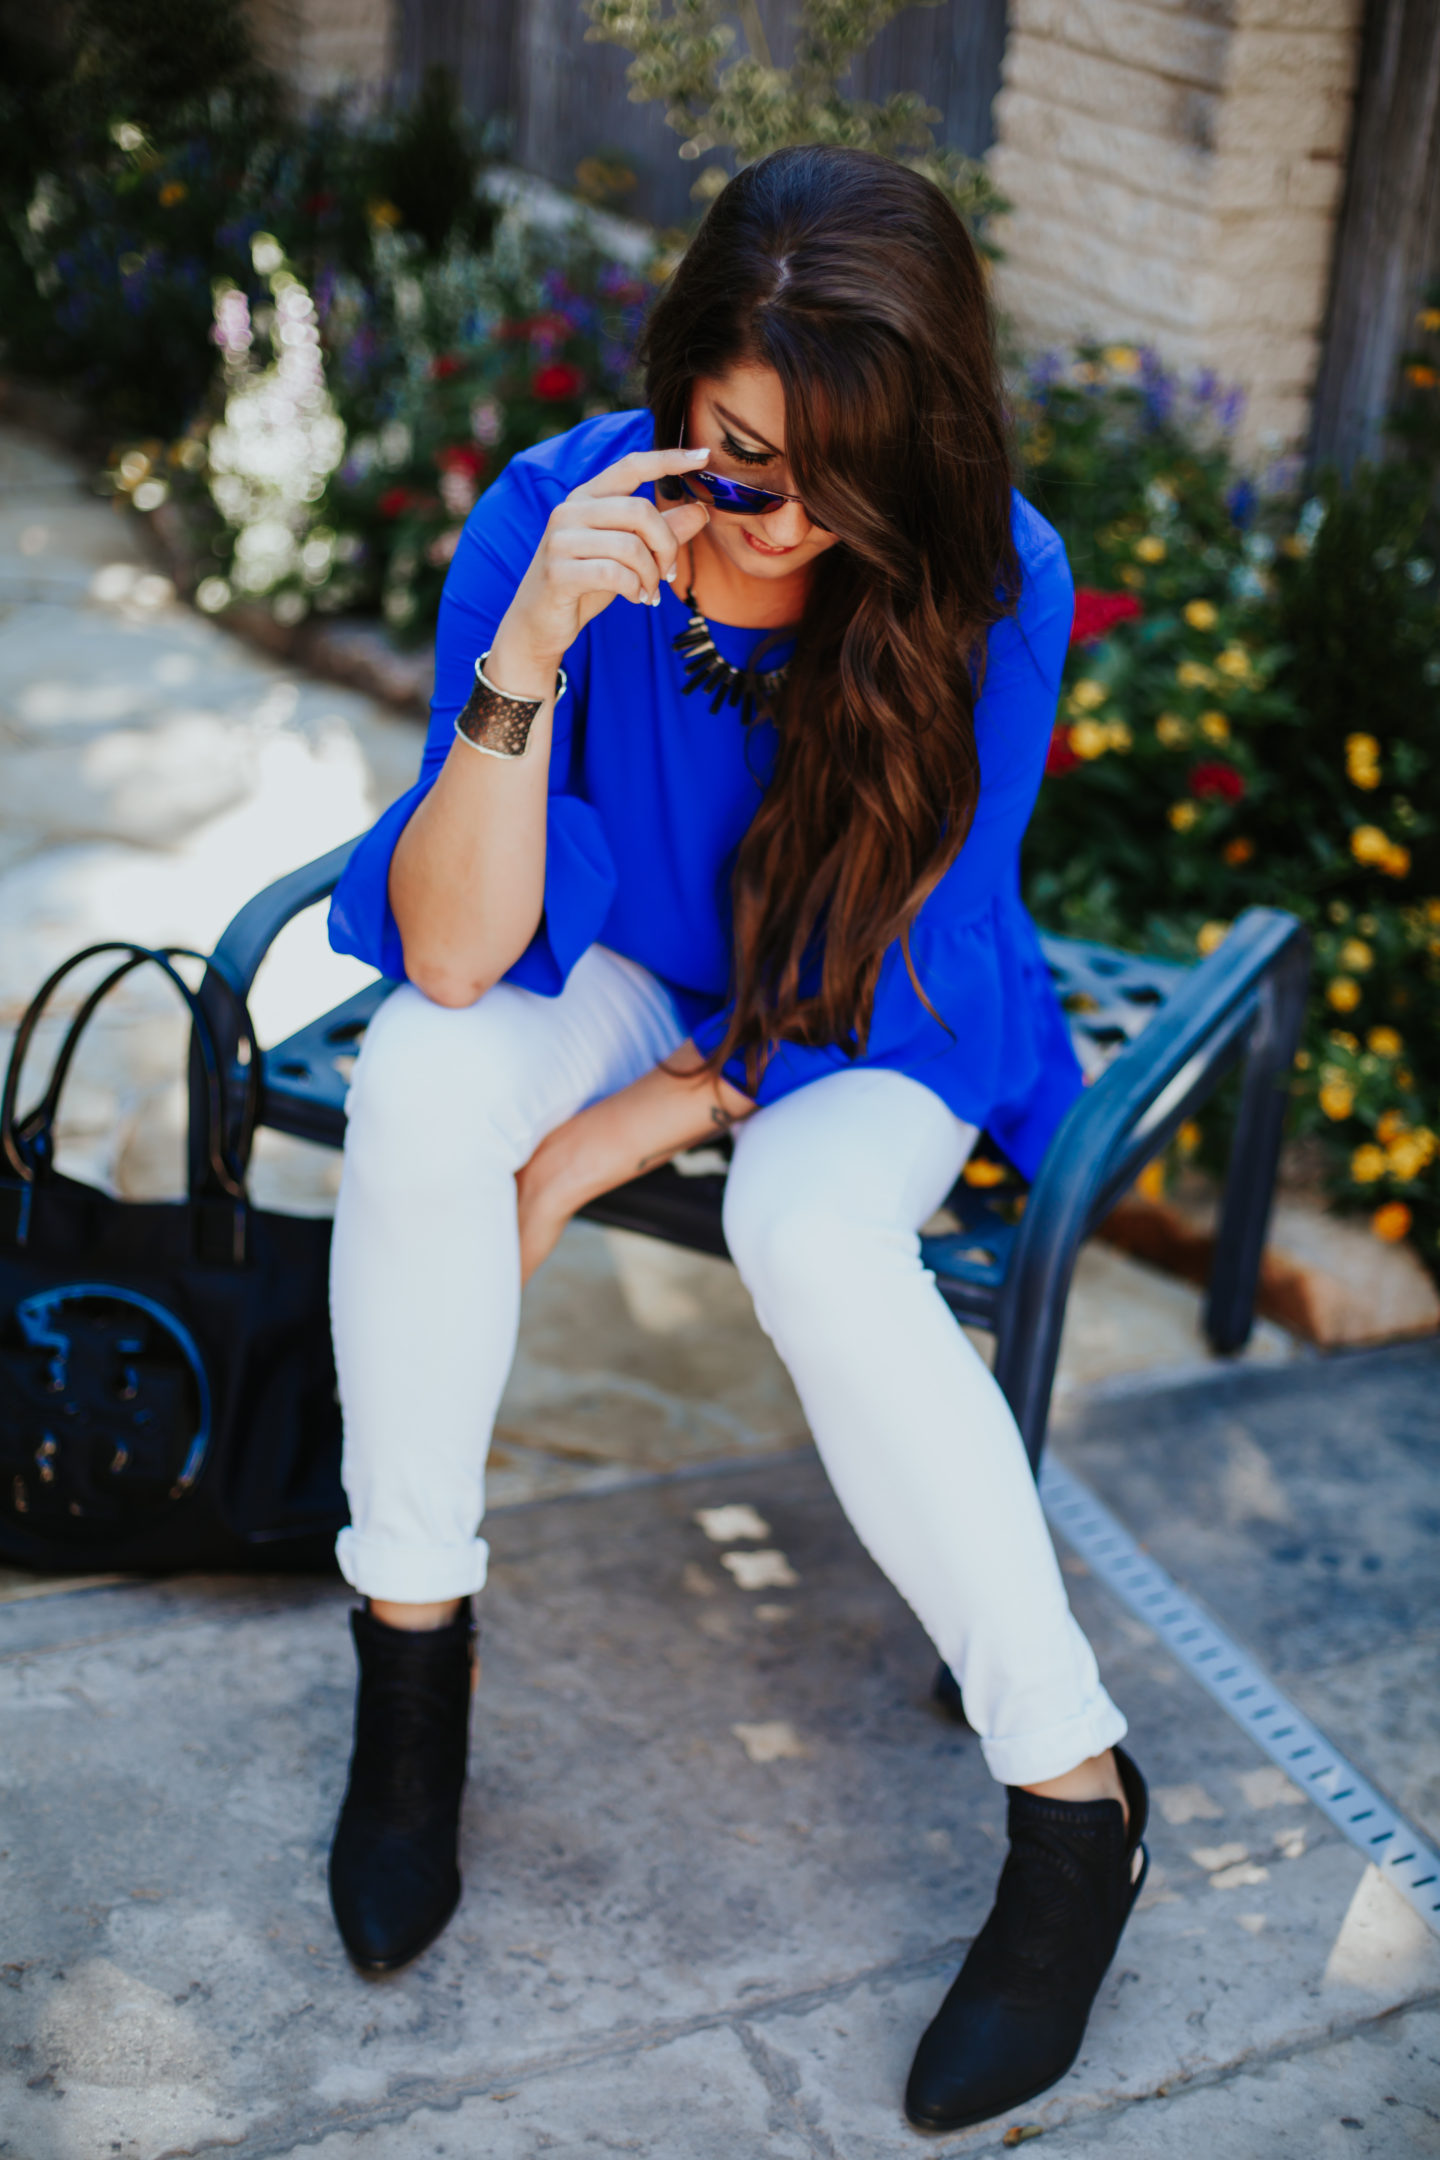 Instagram Post! Standout bright blue ruffle top!